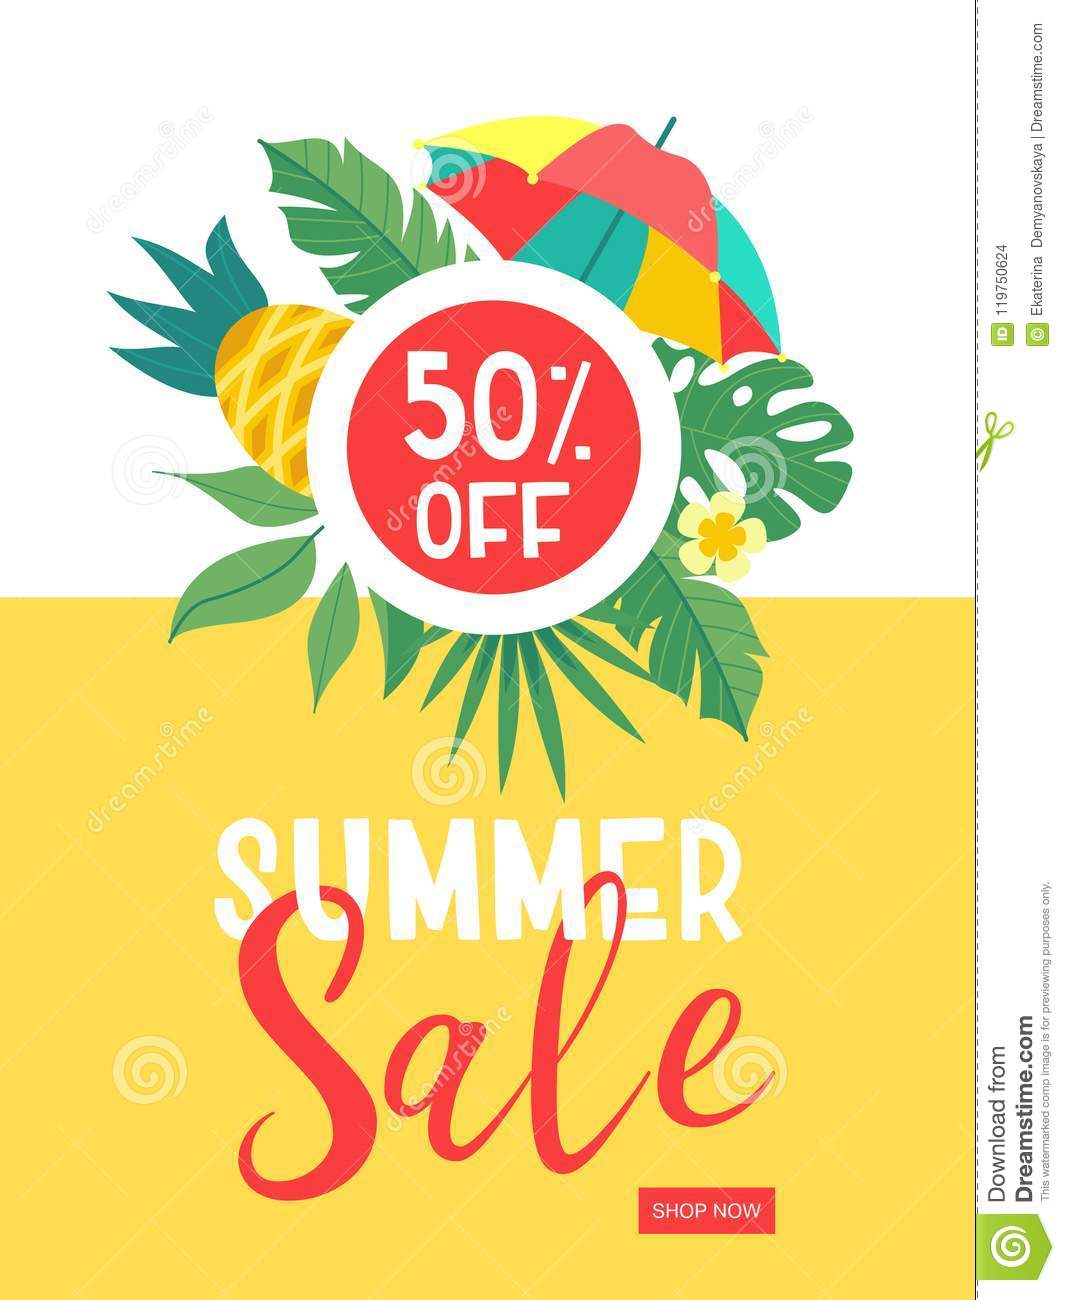 Summer sale. Bright colorful advertising poster. Colorful umbrella, tropical leaves and fruit. Illustration in cartoon style.